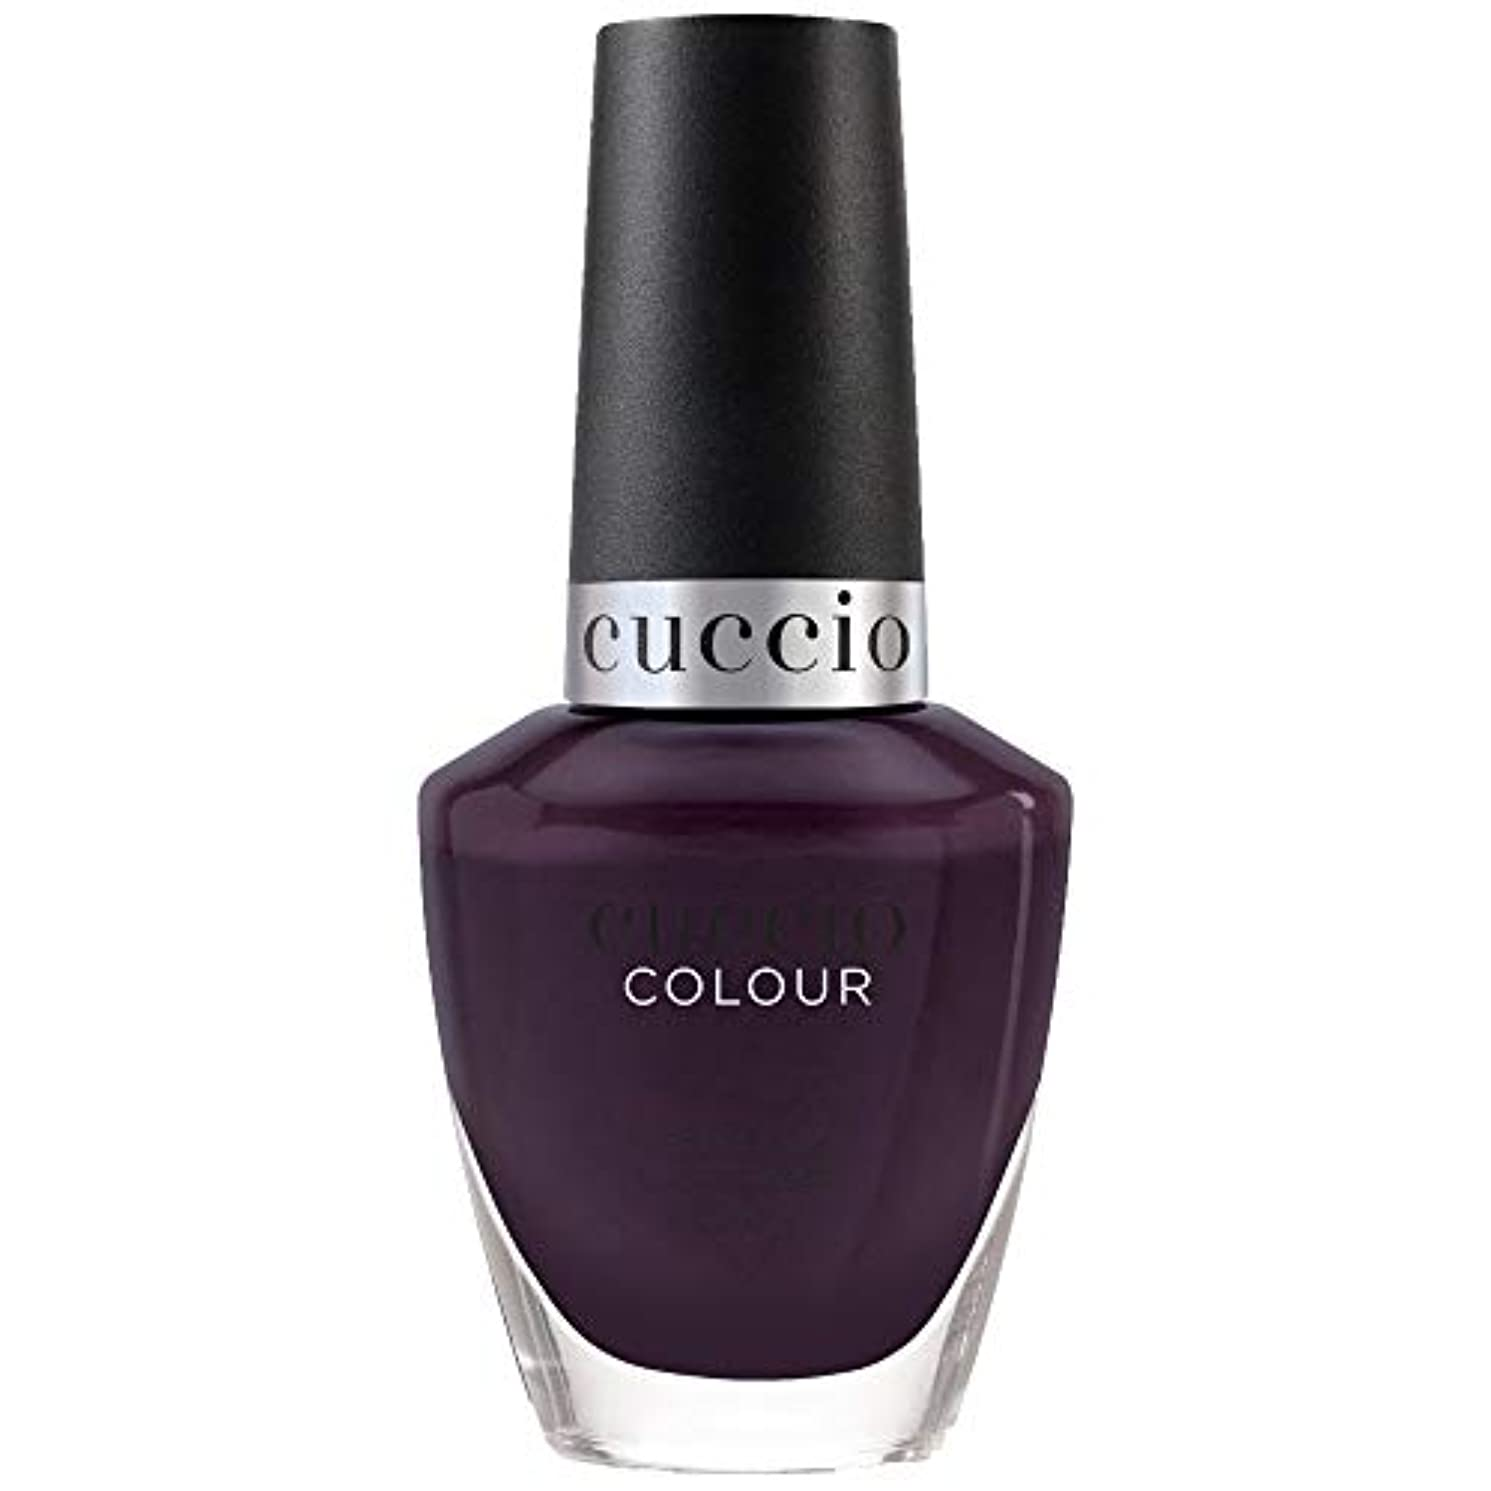 Cuccio Colour Nail Lacquer - Tapestry Collection - Quilty As Charged - 13 mL / 0.43 oz